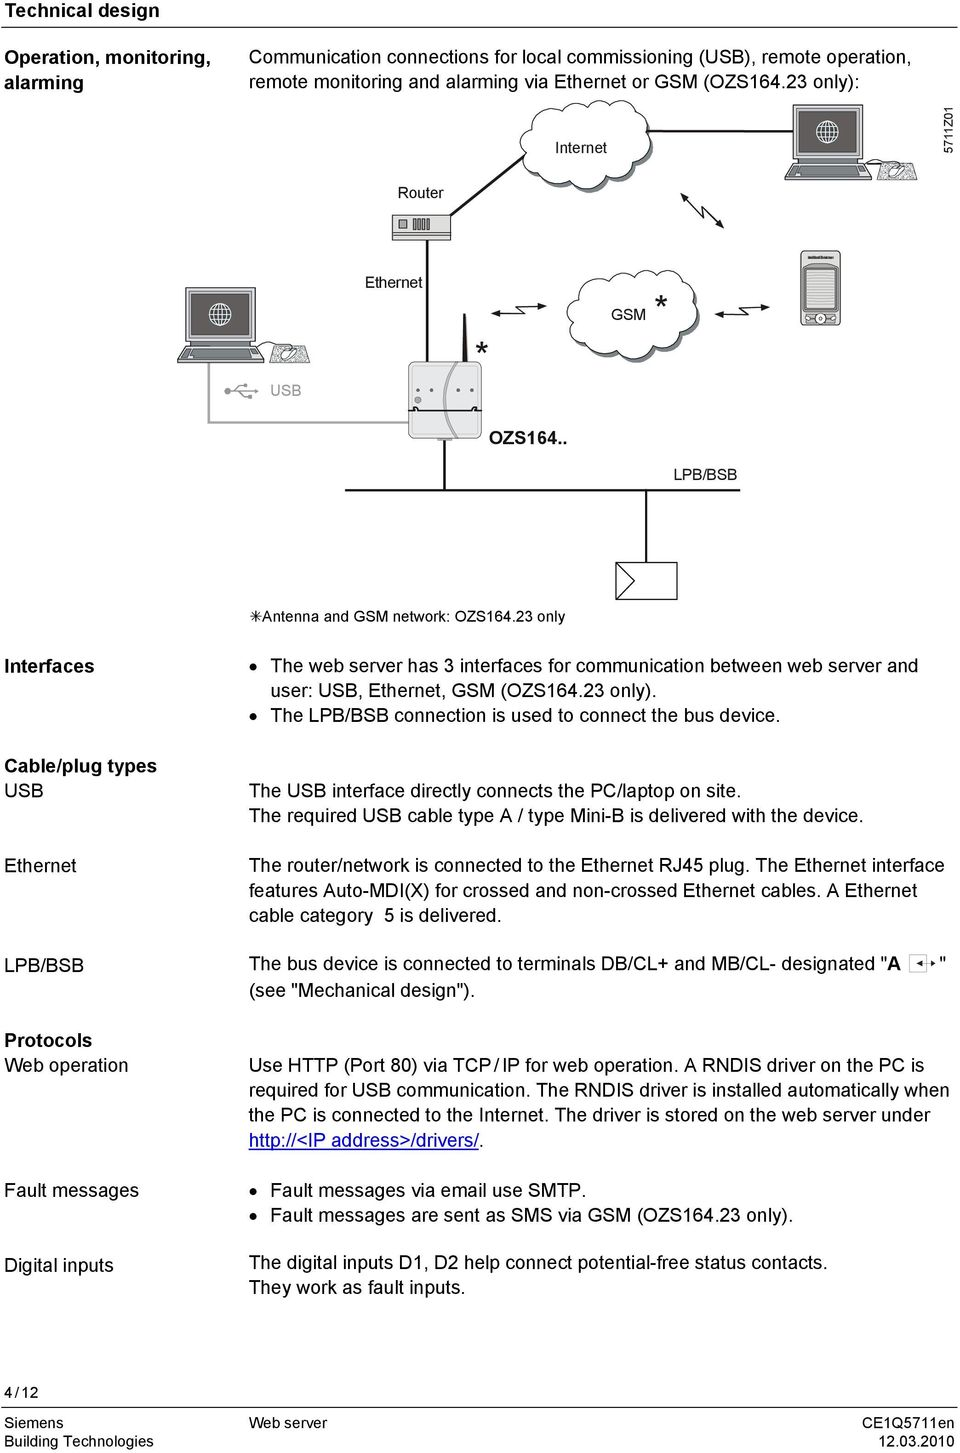 Ozs Web Server For Lpb Bsb Plants Pdf 865 Usb Wiring Diagram 23 Only Interfaces Cable Plug Types Ethernet Protocols Operation Fault